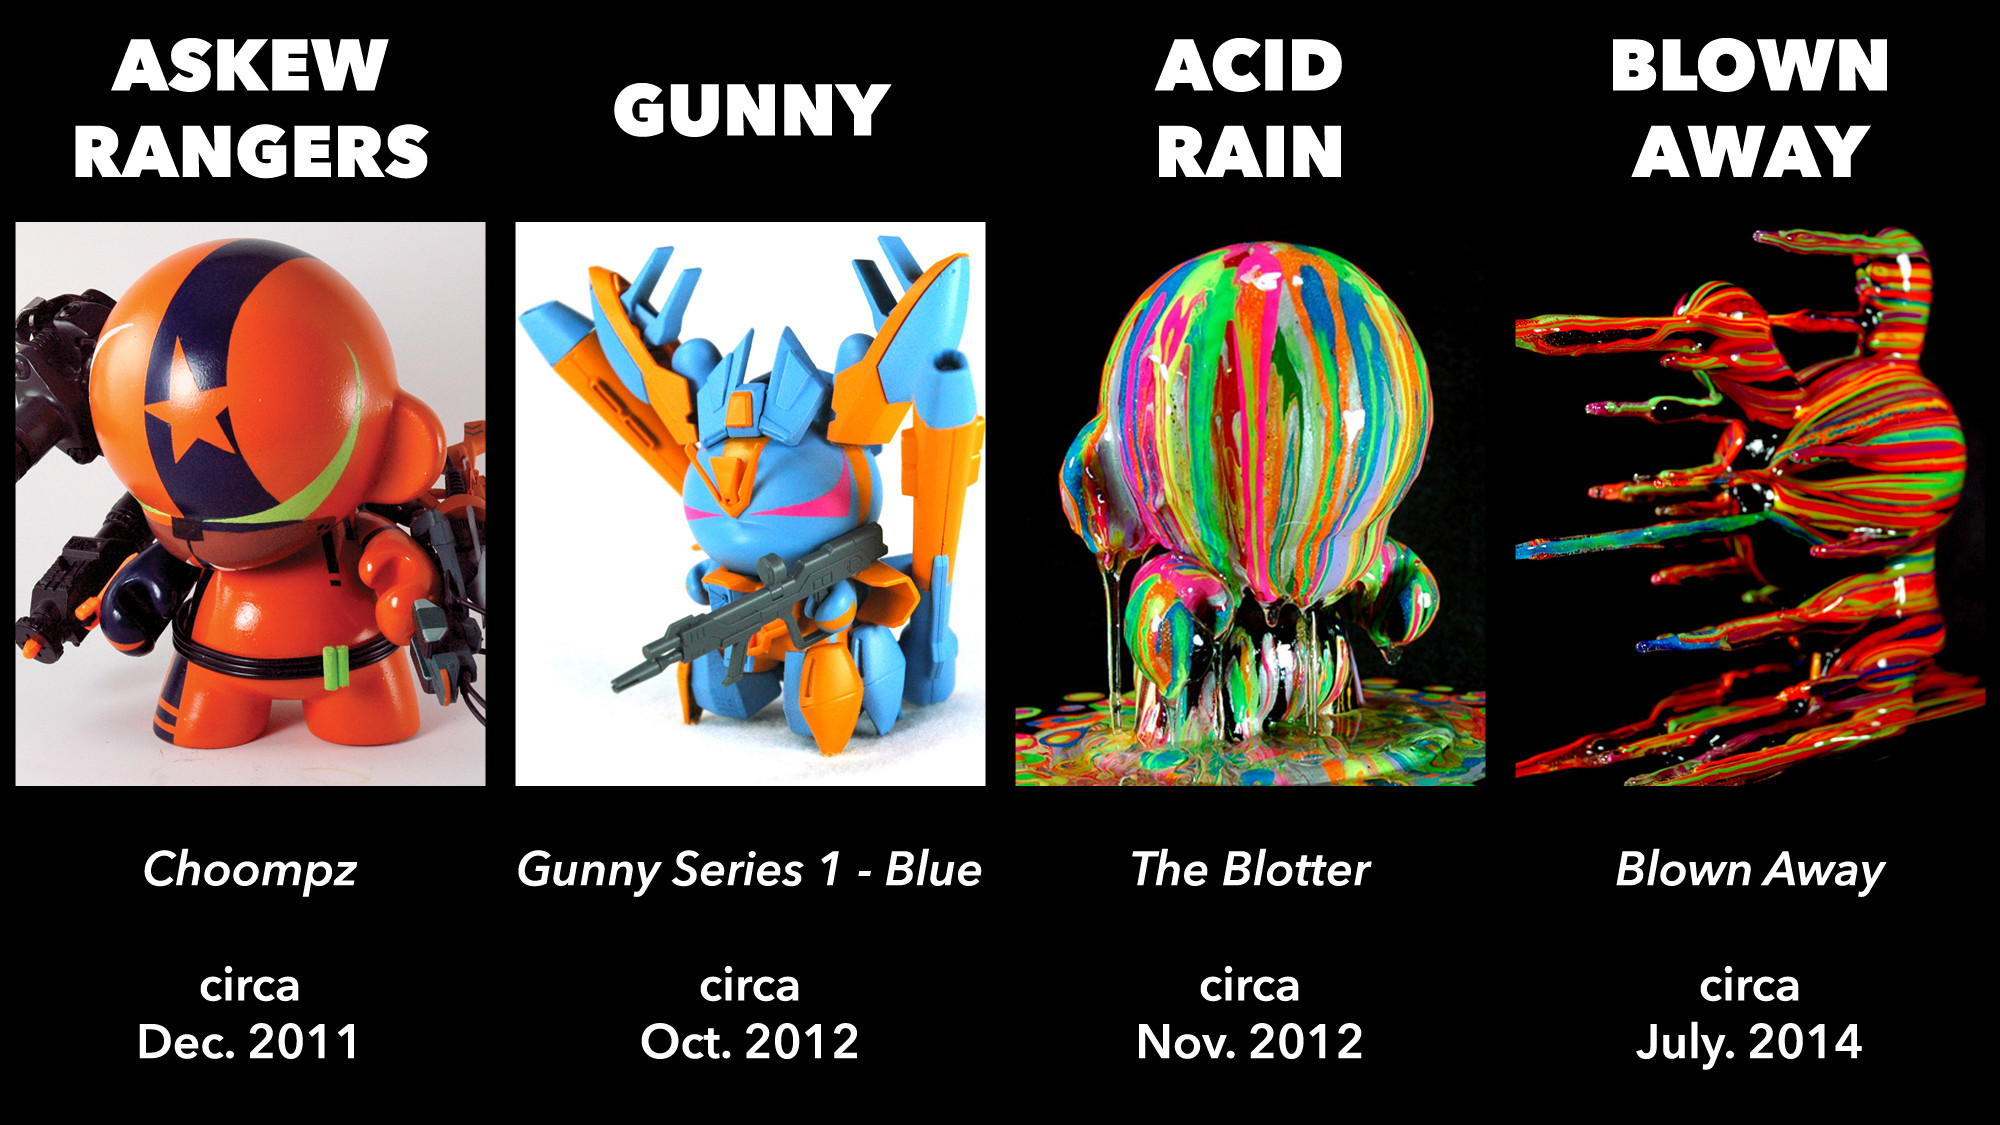 Josh Mayhem's Art Periods - Askew Rangers, Gunny, Acid Rain, and Blown Away